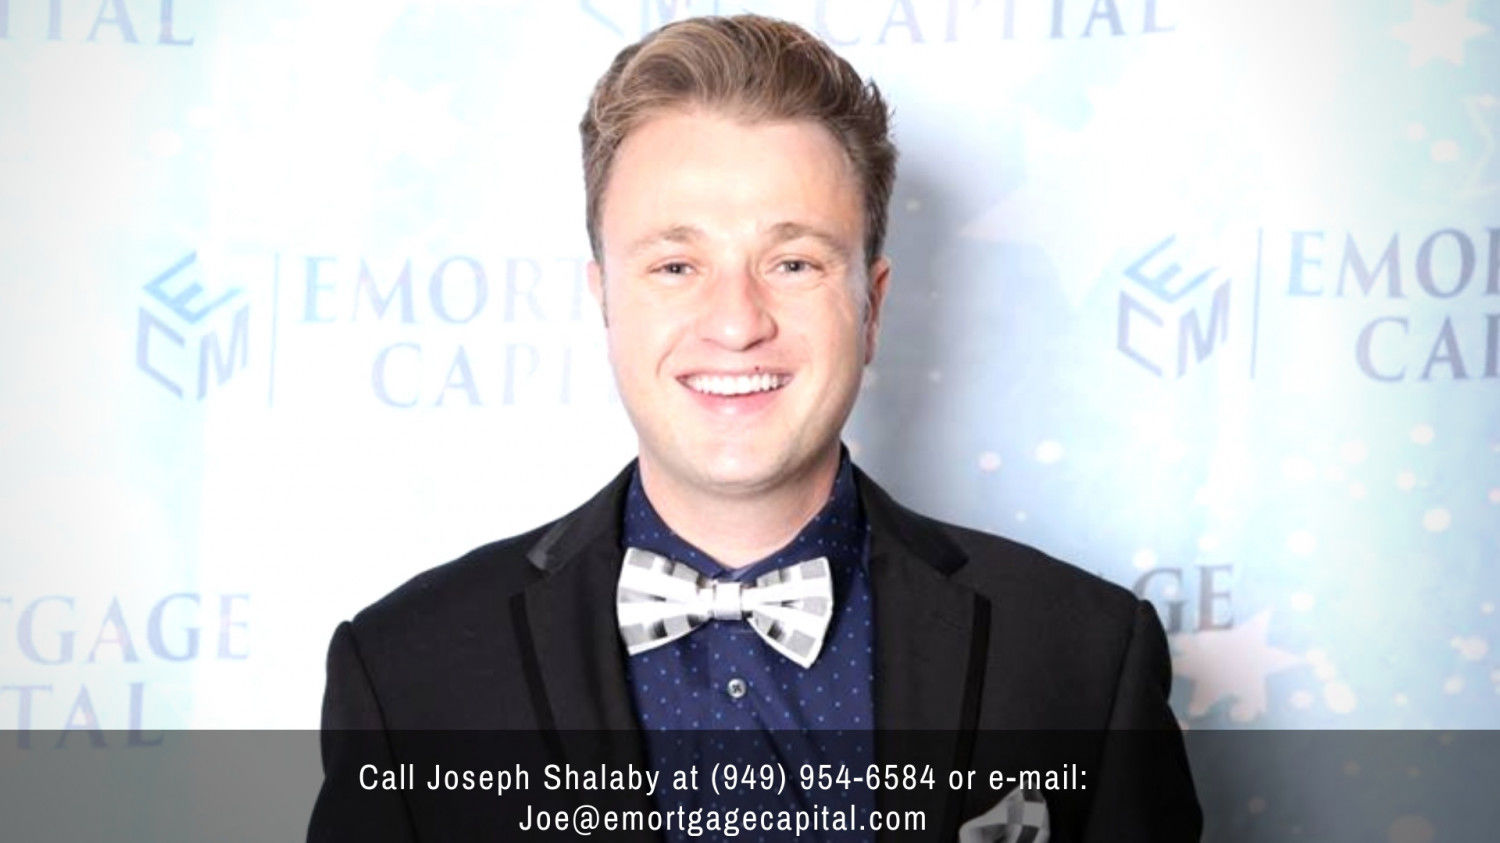 Joseph Shalaby - EMortgage Capital Inc.